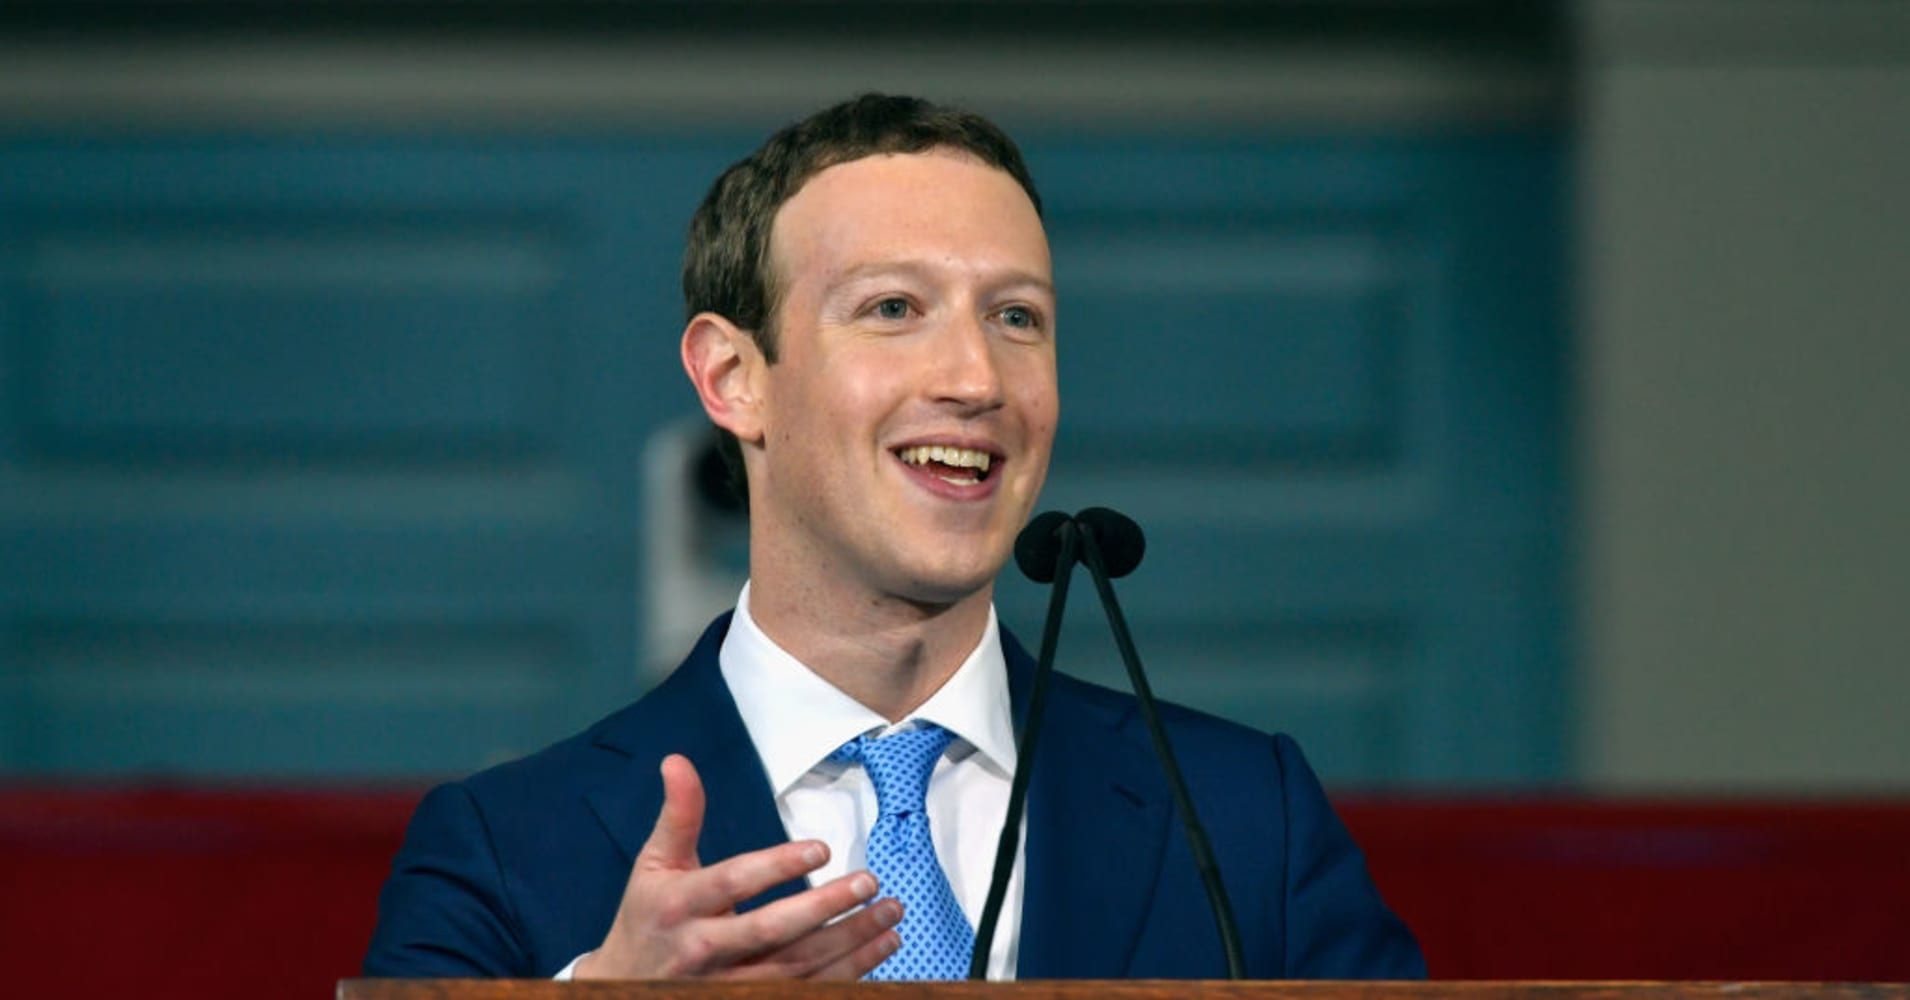 Mark Zuckerberg Positions Himself As The Anti-Trump In Speech To Harvard